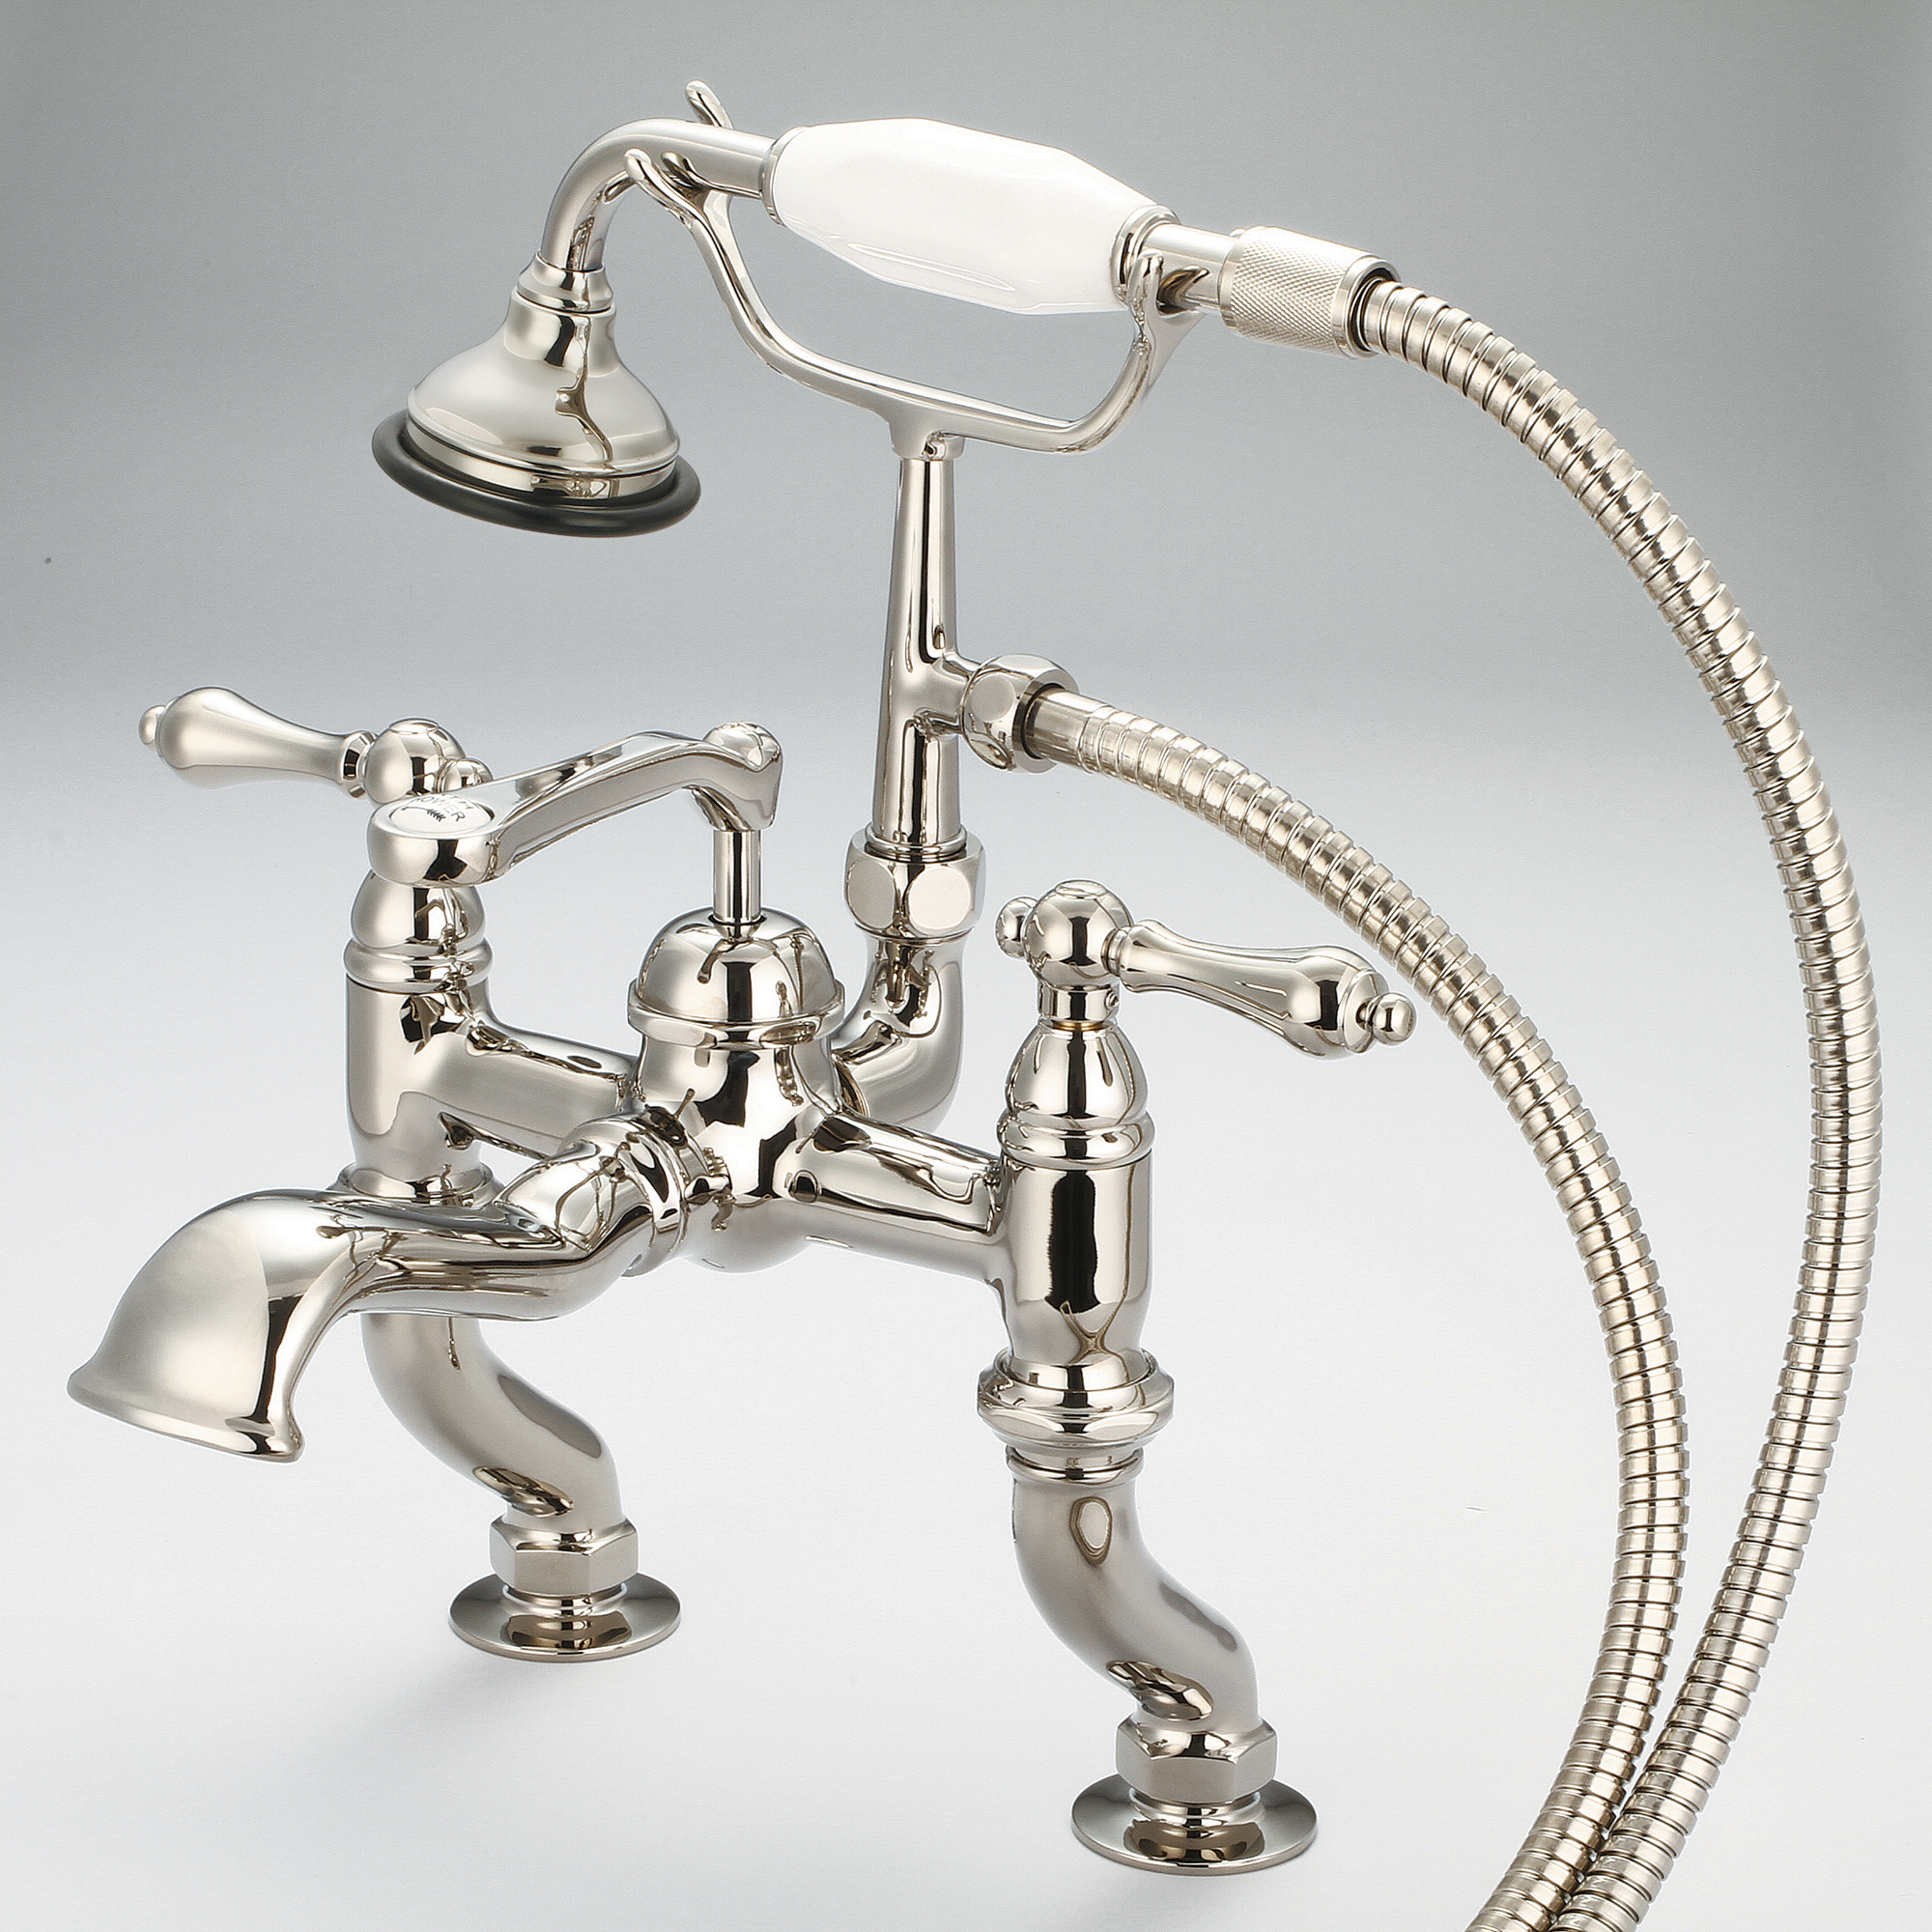 Vintage Classic Adjustable Center Deck Mount Tub Faucet With Handheld Shower in Polished Nickel (PVD) Finish With Metal Lever Handles Without Labels